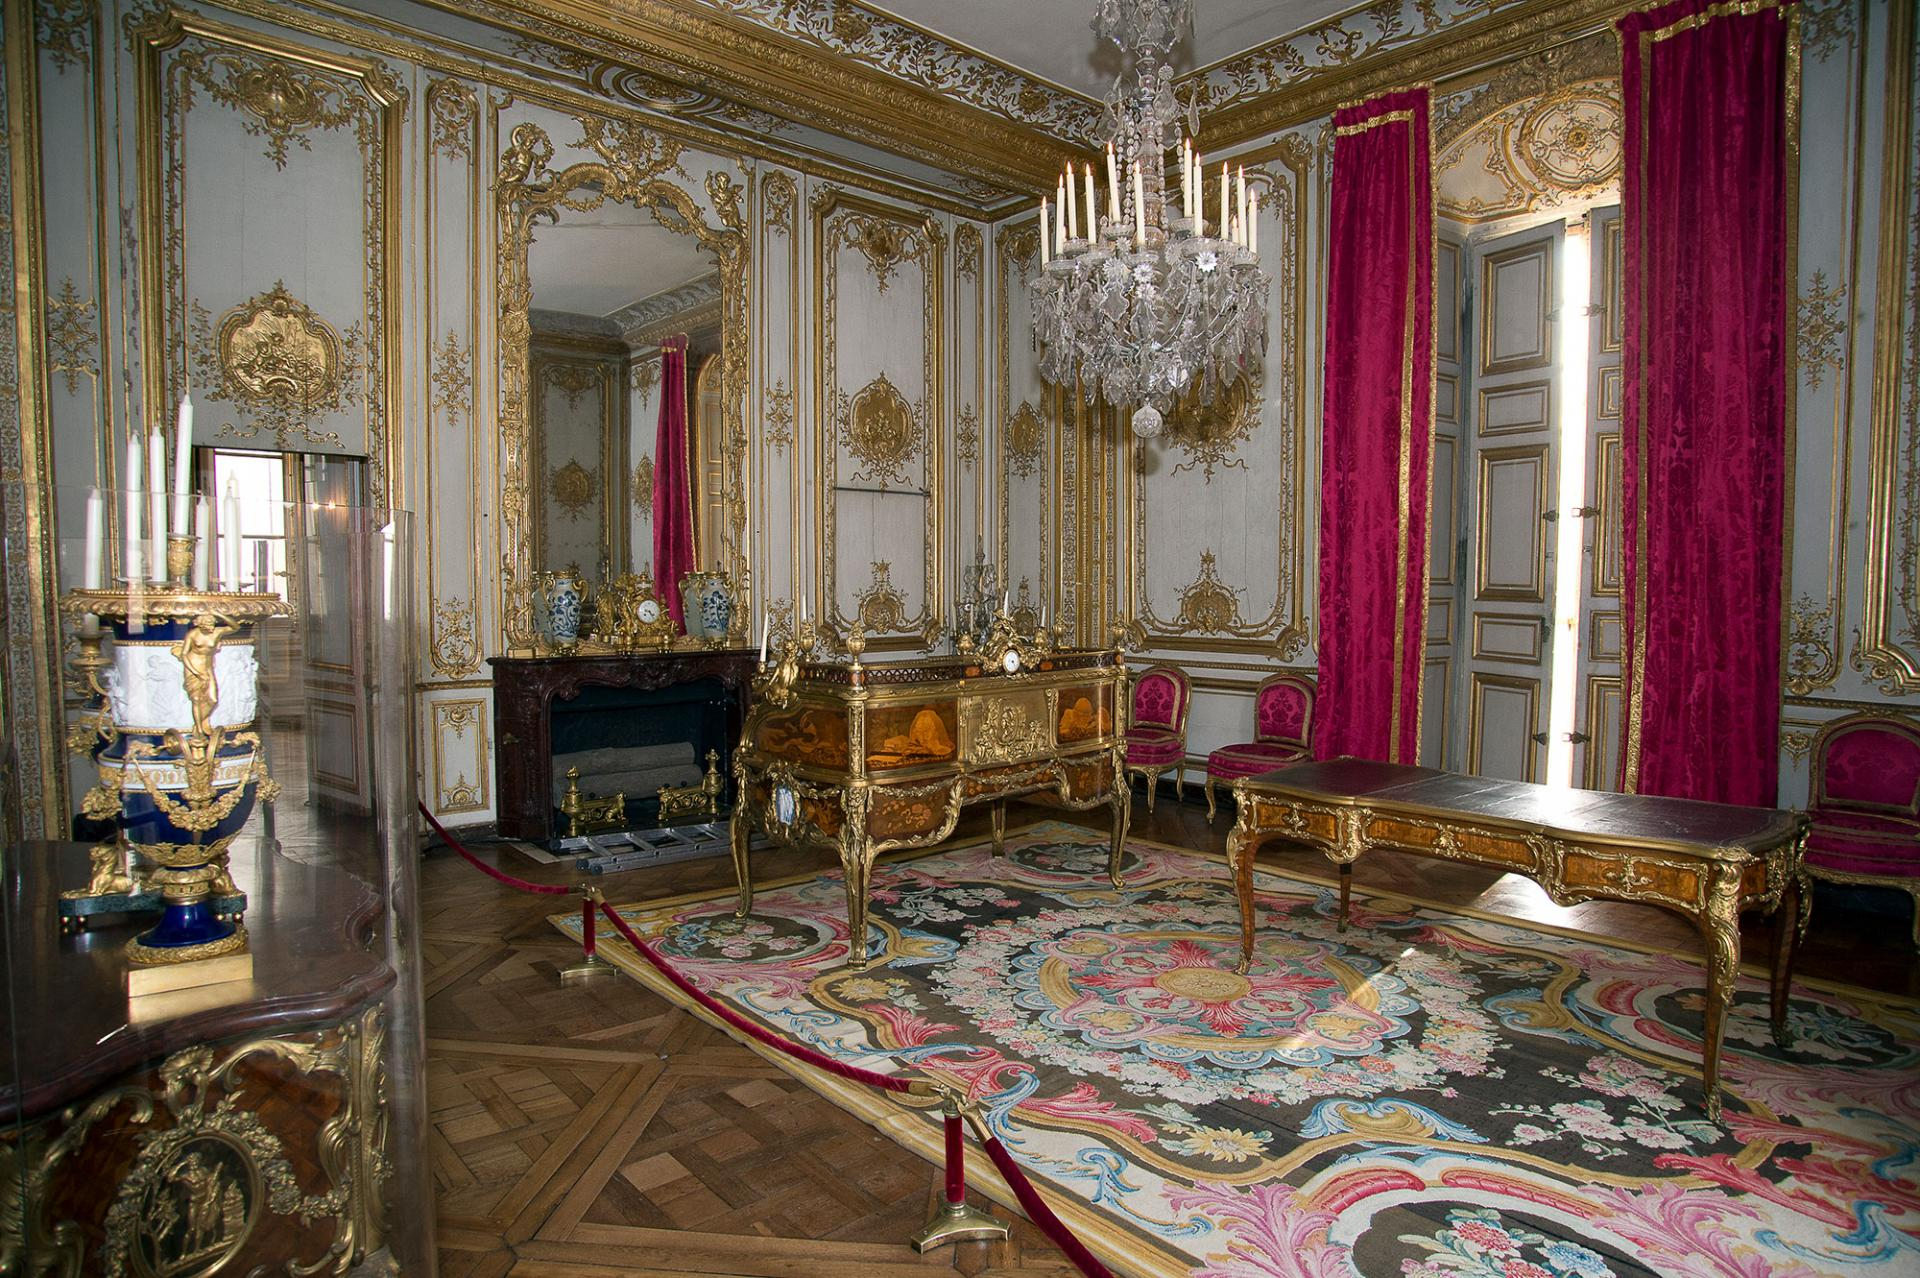 The Corner salon, which was provided for the use of Nicholas II.